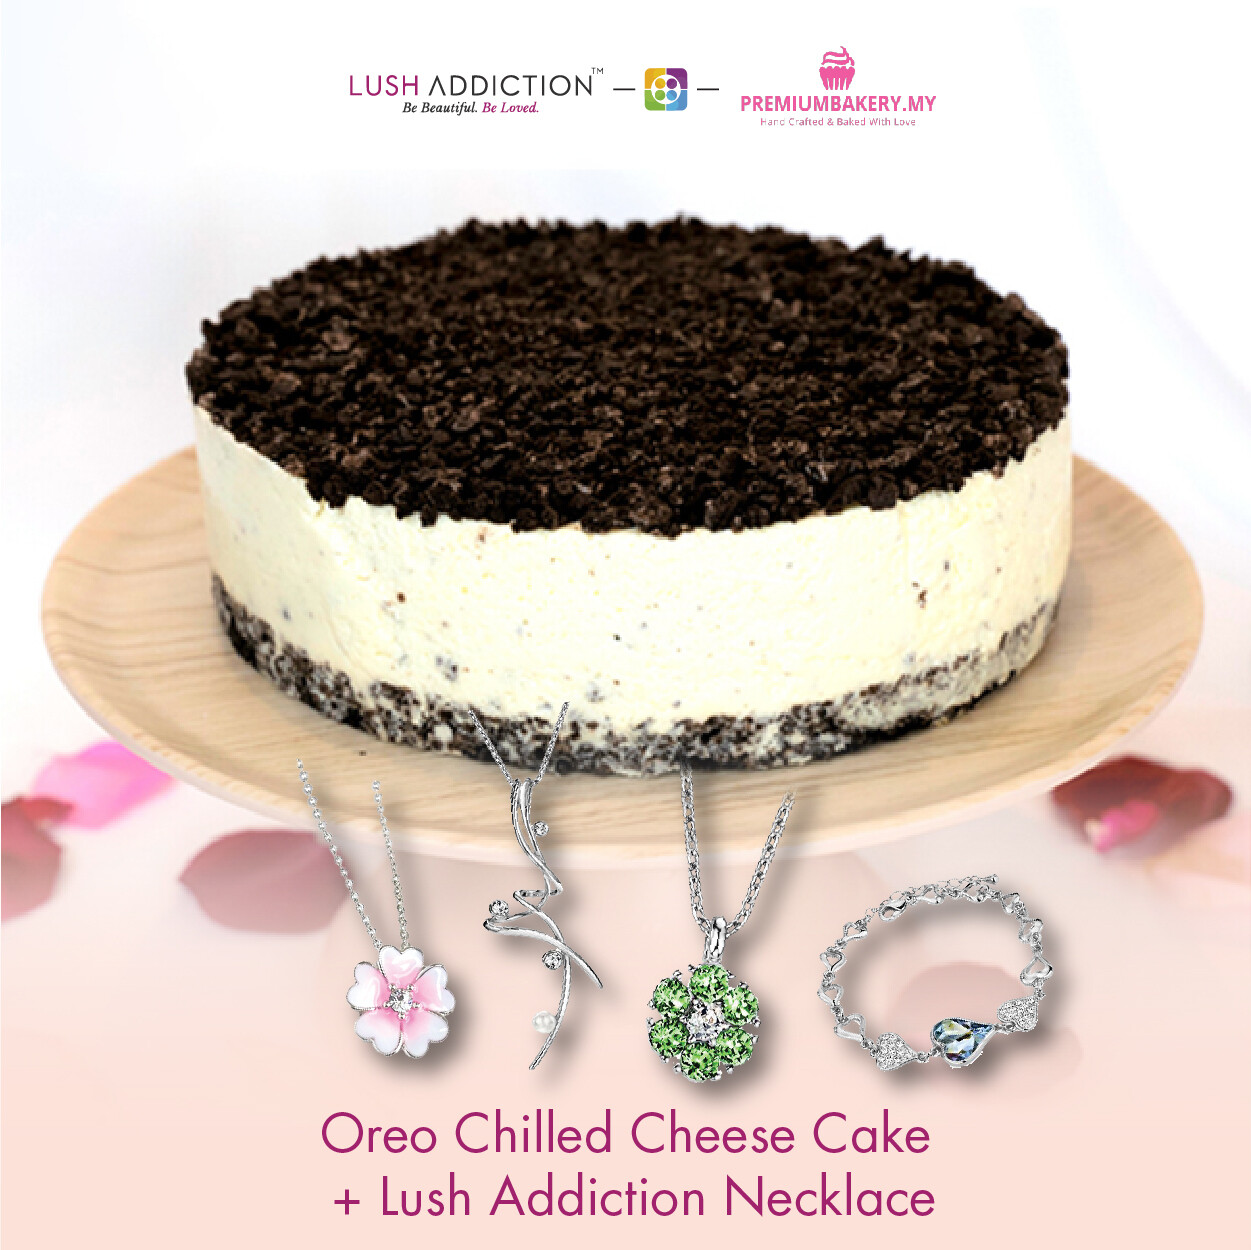 Oreo Chilled Cheese Cake + Lush Addiction Necklace (By: Premium Bakery  from KL)